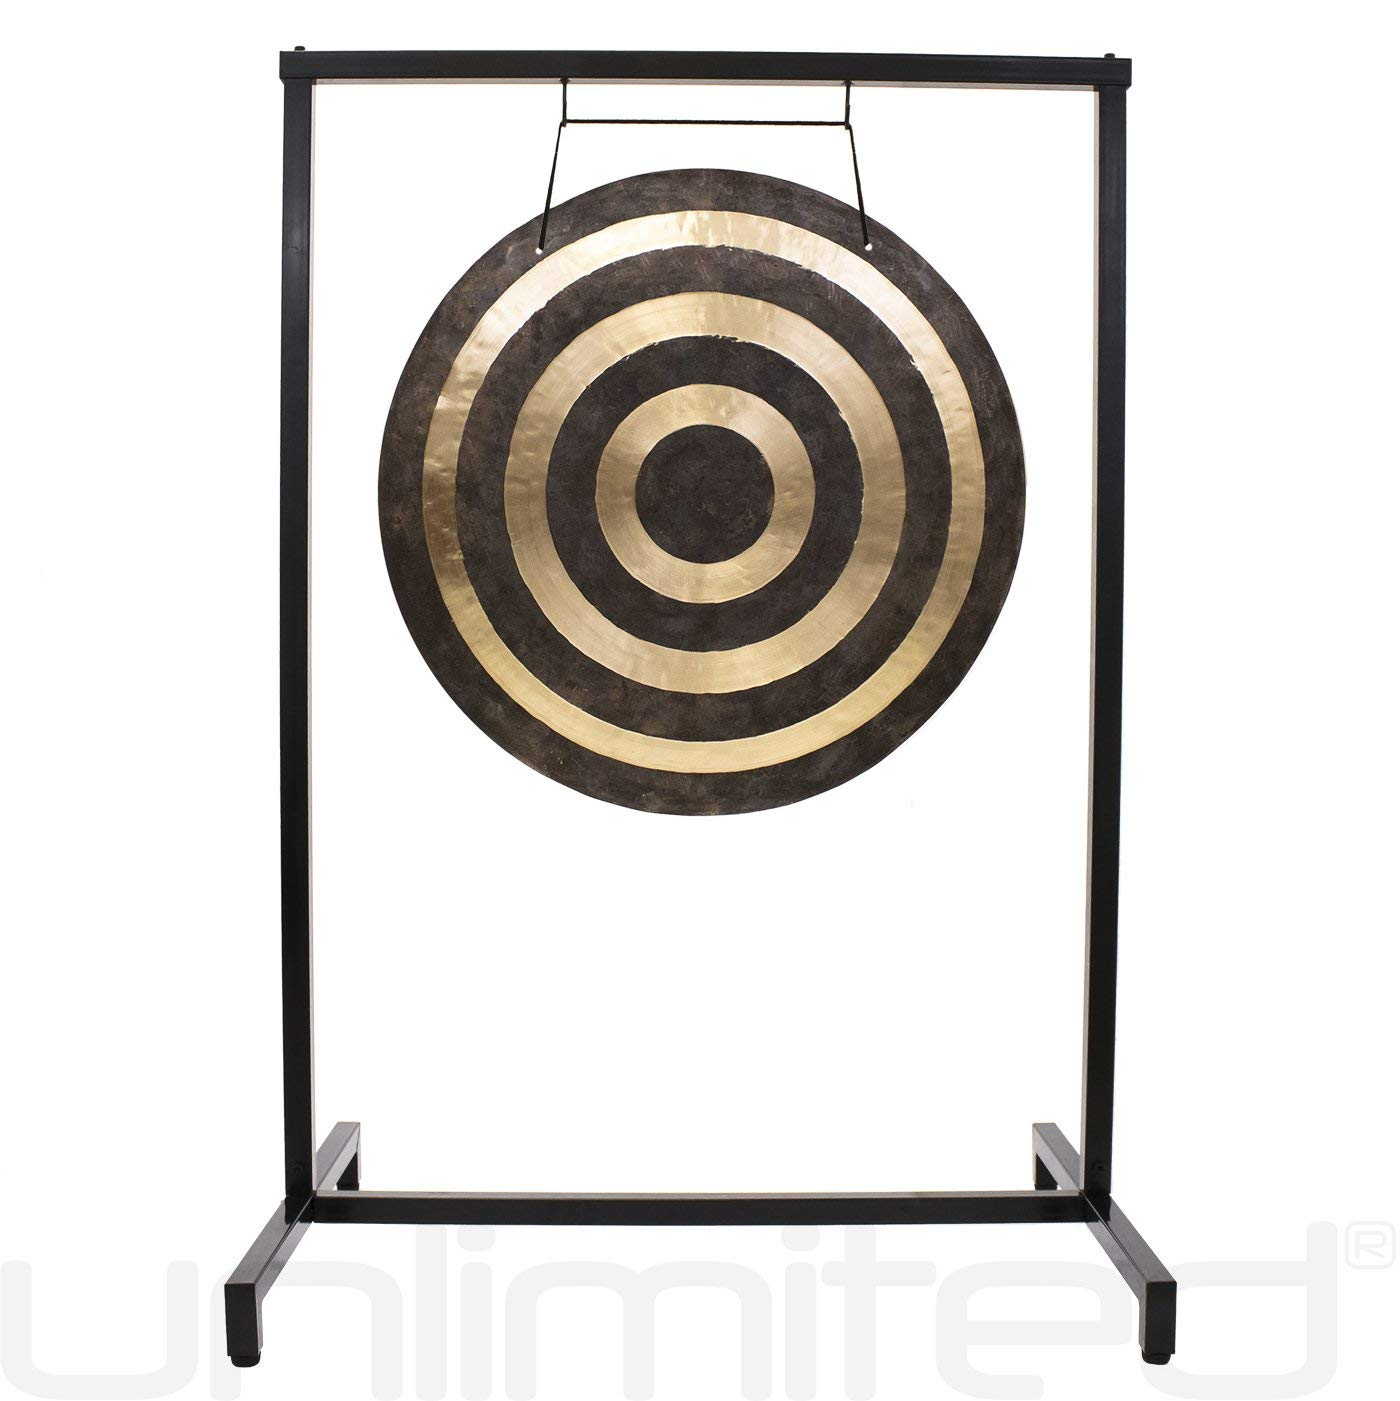 22'' to 28'' Gongs on the Everyday Miracle Gong Stand